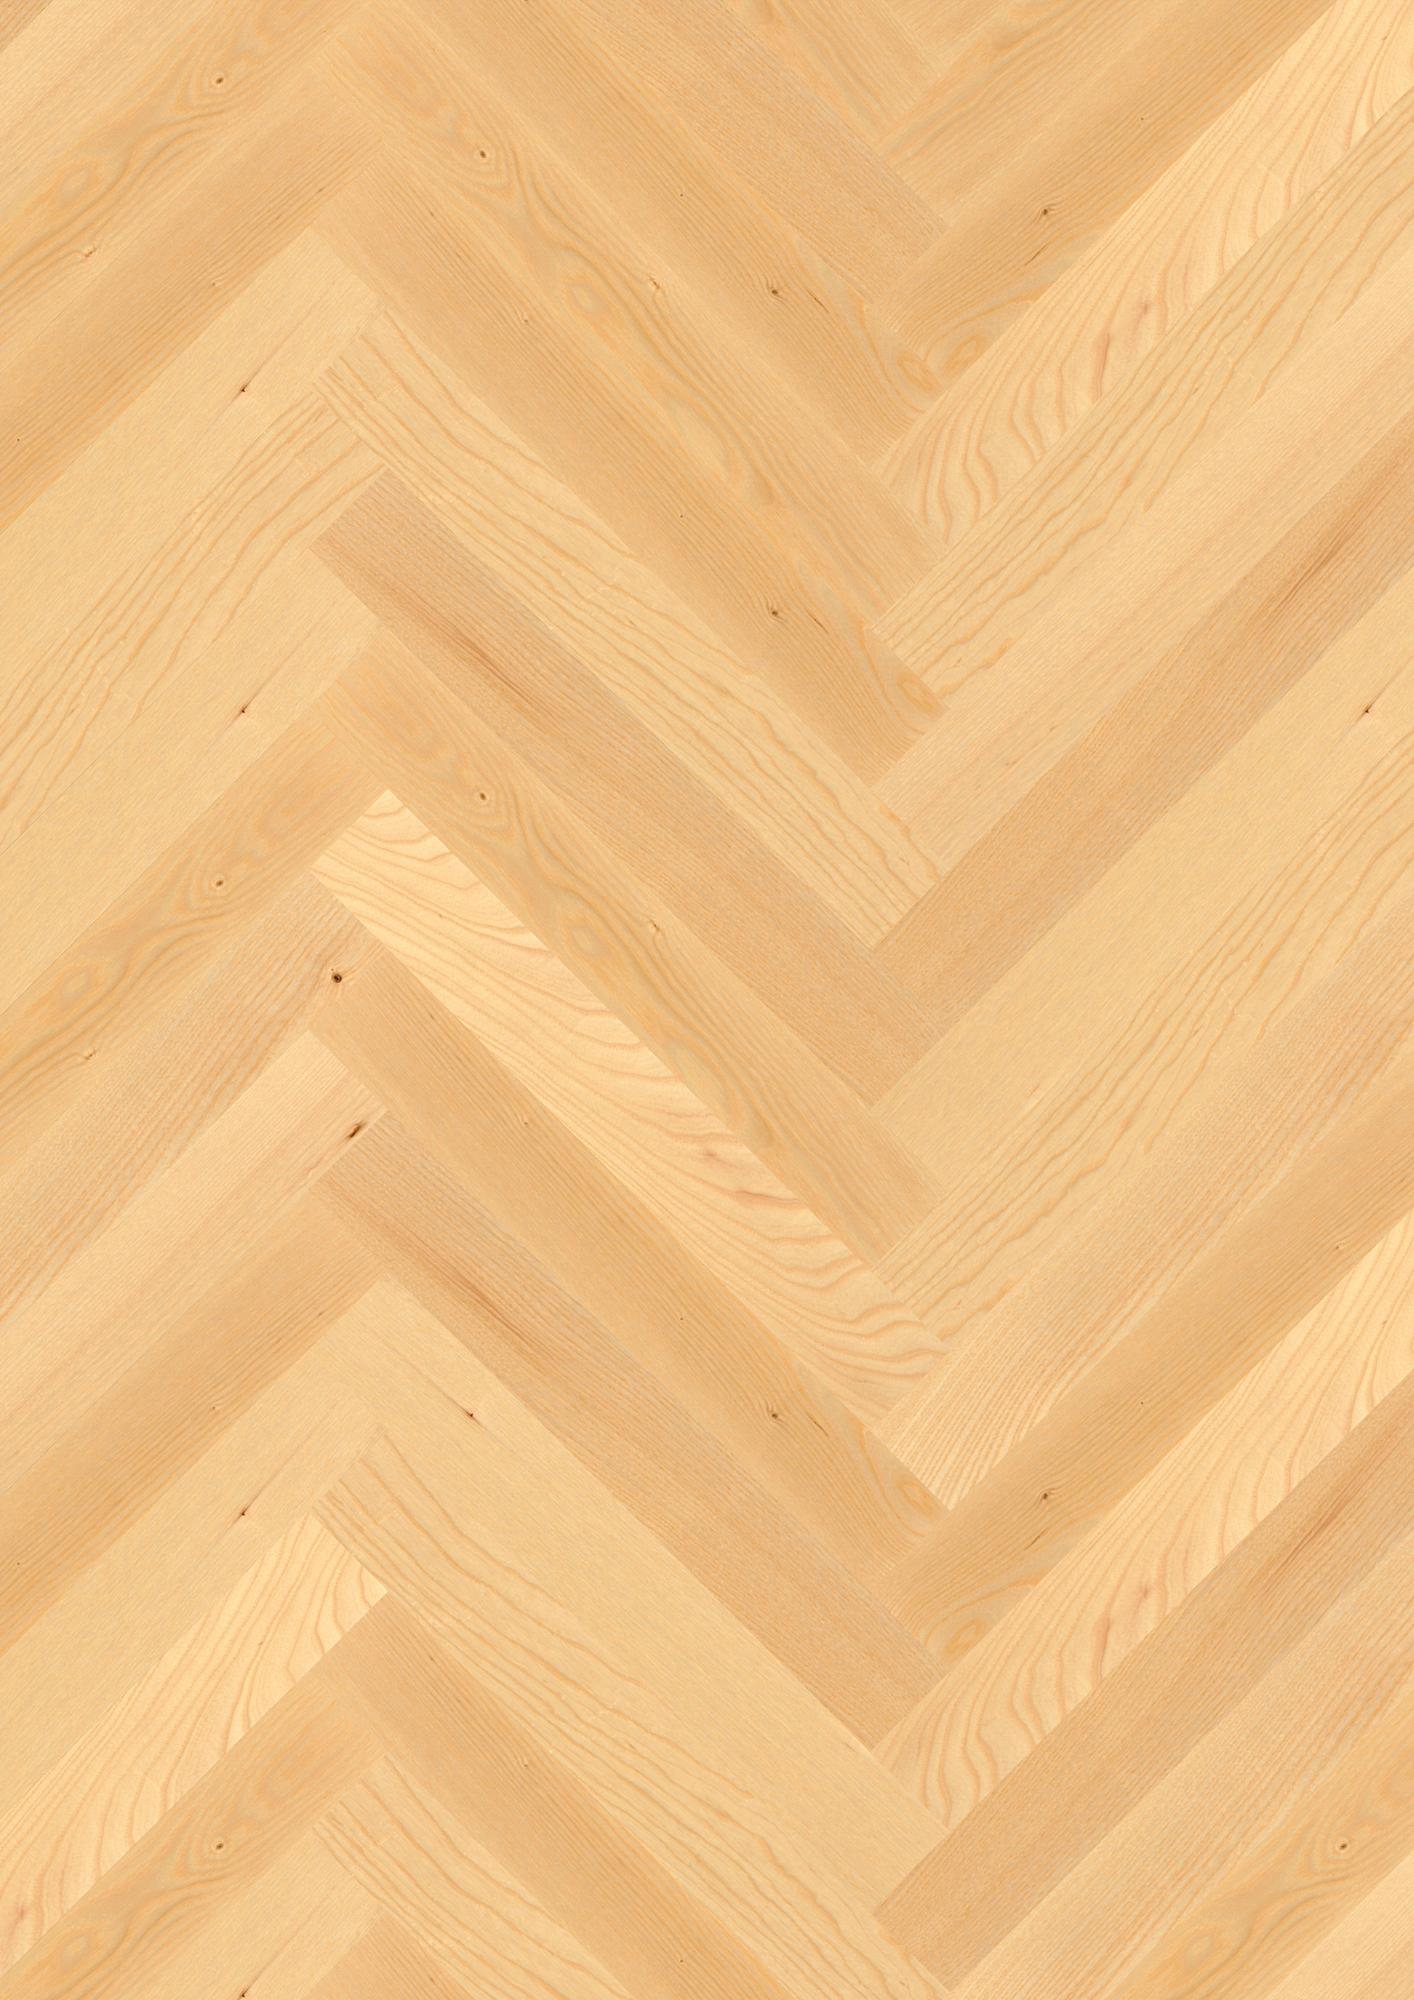 Ash Nature, Live Matt lacquer, Not brushed, Square edged, Short strip Prestige, 10x70x470mm